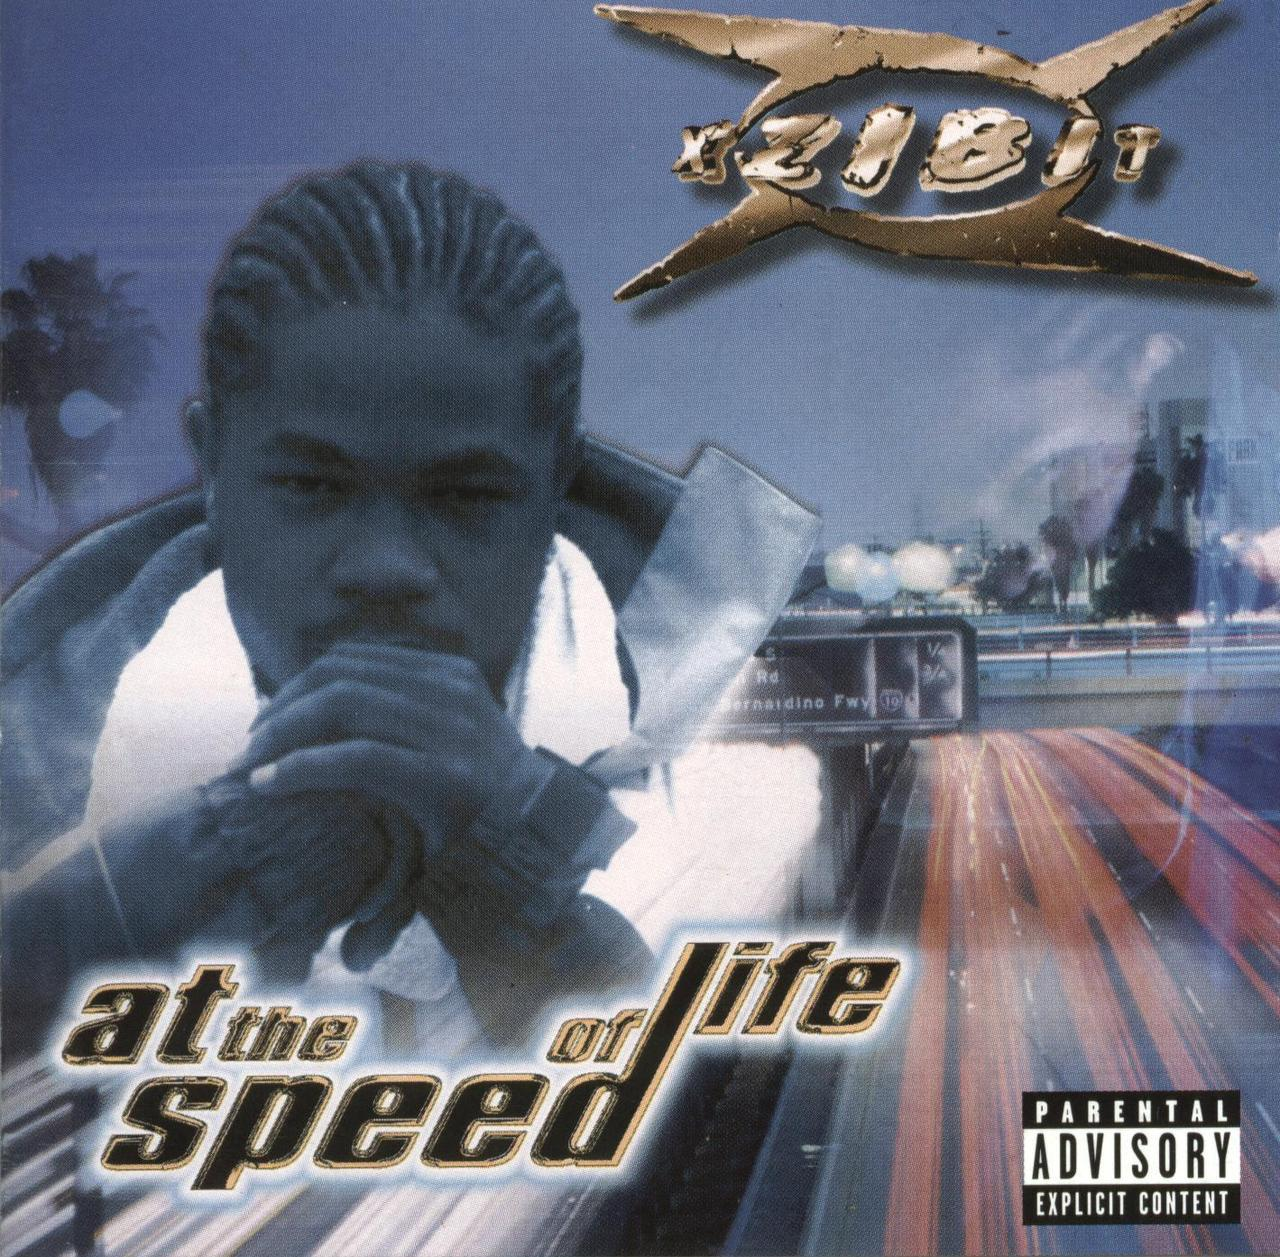 BACK IN THE DAY |10/15/96| Xzibit releases his debut albuvm, At the Speed of Light, on Loud Records.